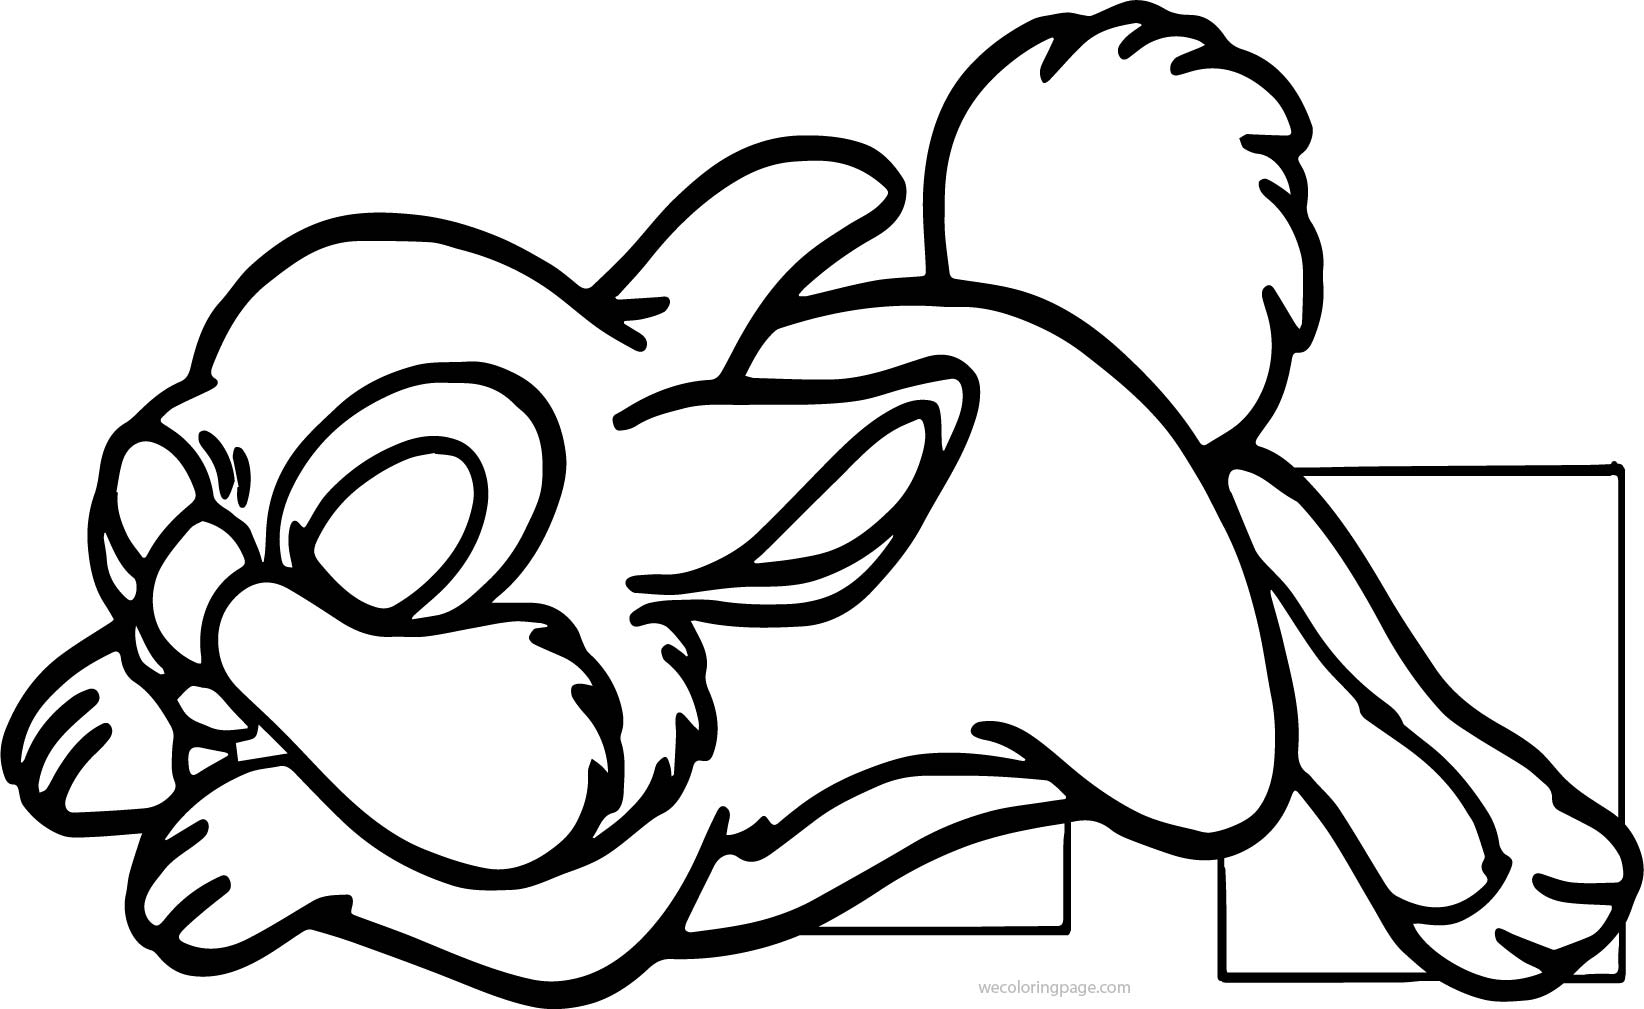 Sleeping disney bambi thumber bunny cartoon coloring page for Sleeping coloring pages